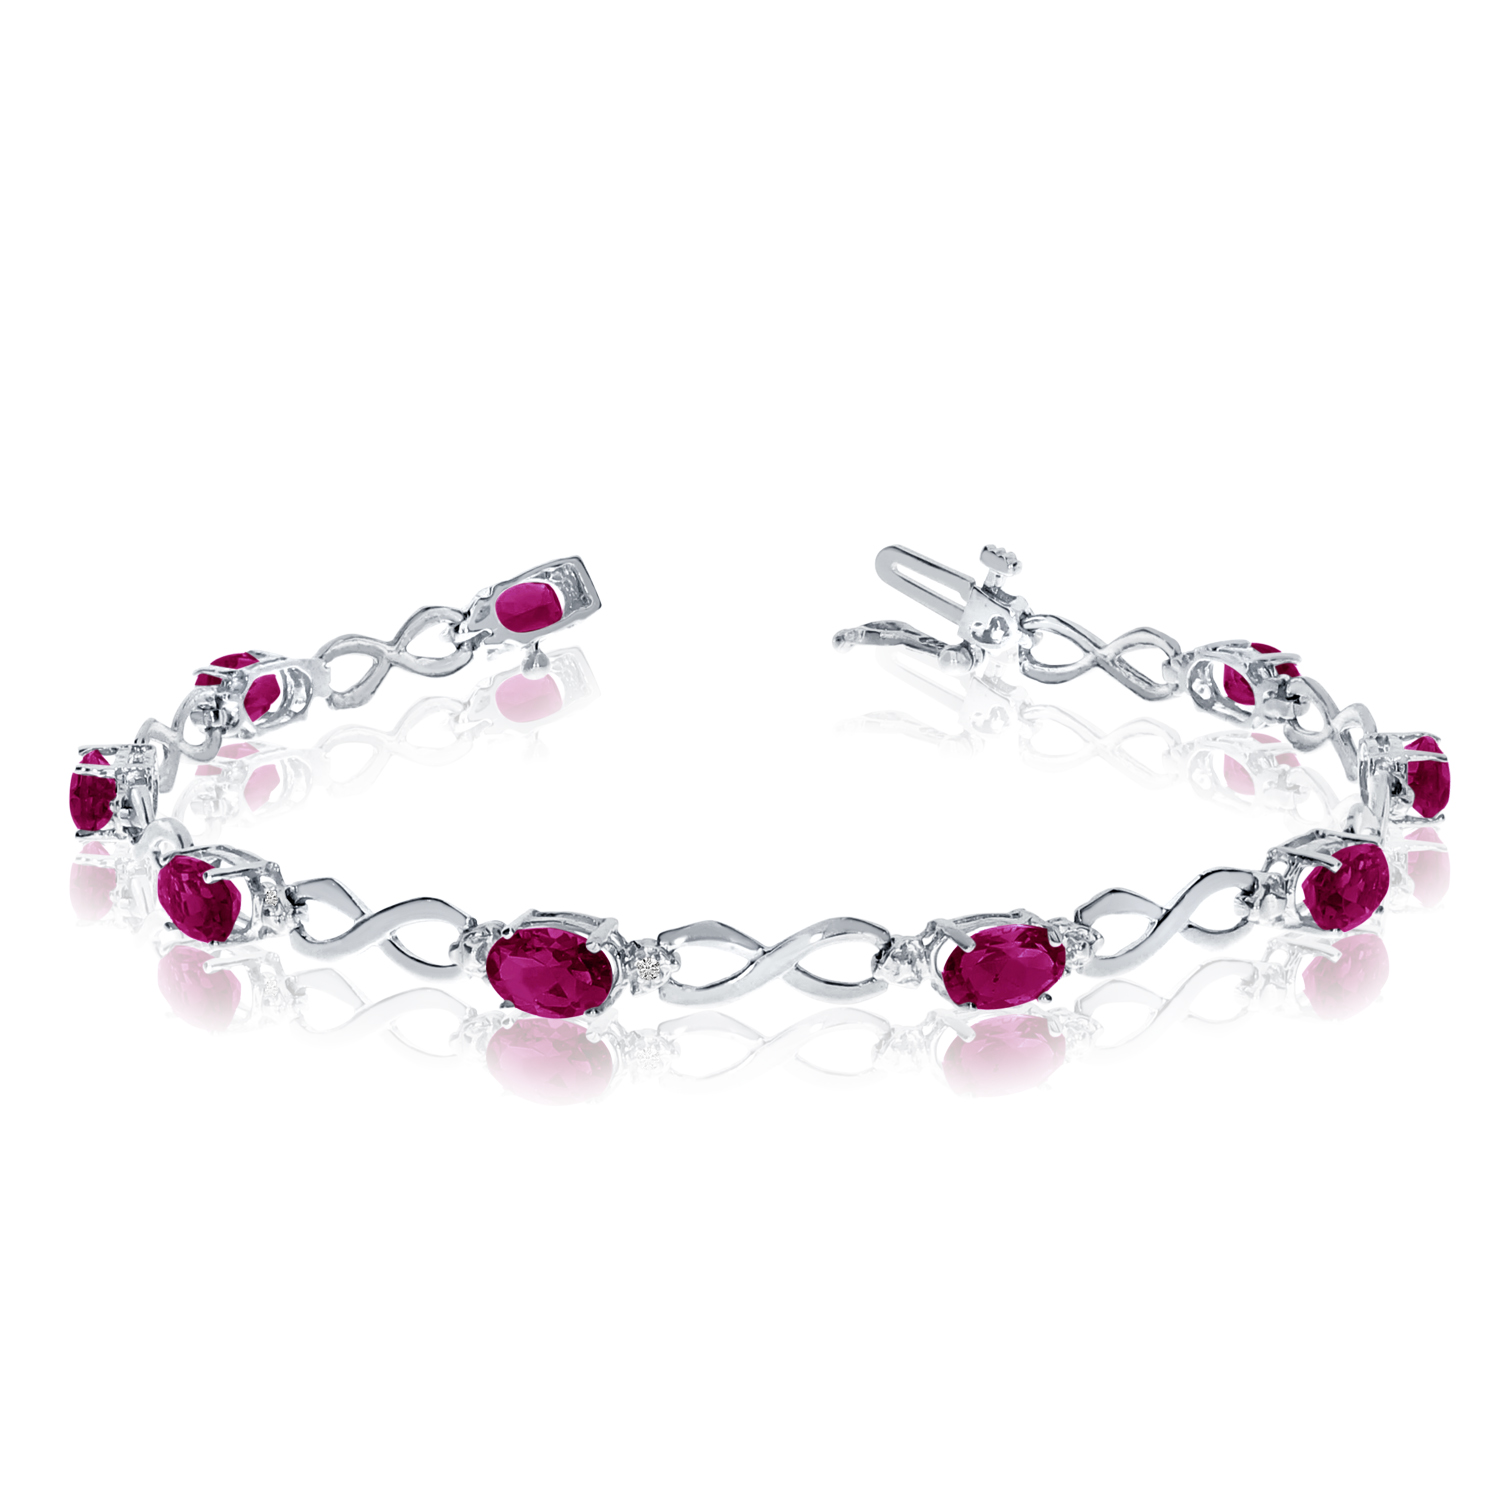 Direct-Jewelry 14K White Gold Oval Ruby and Diamond Bracelet